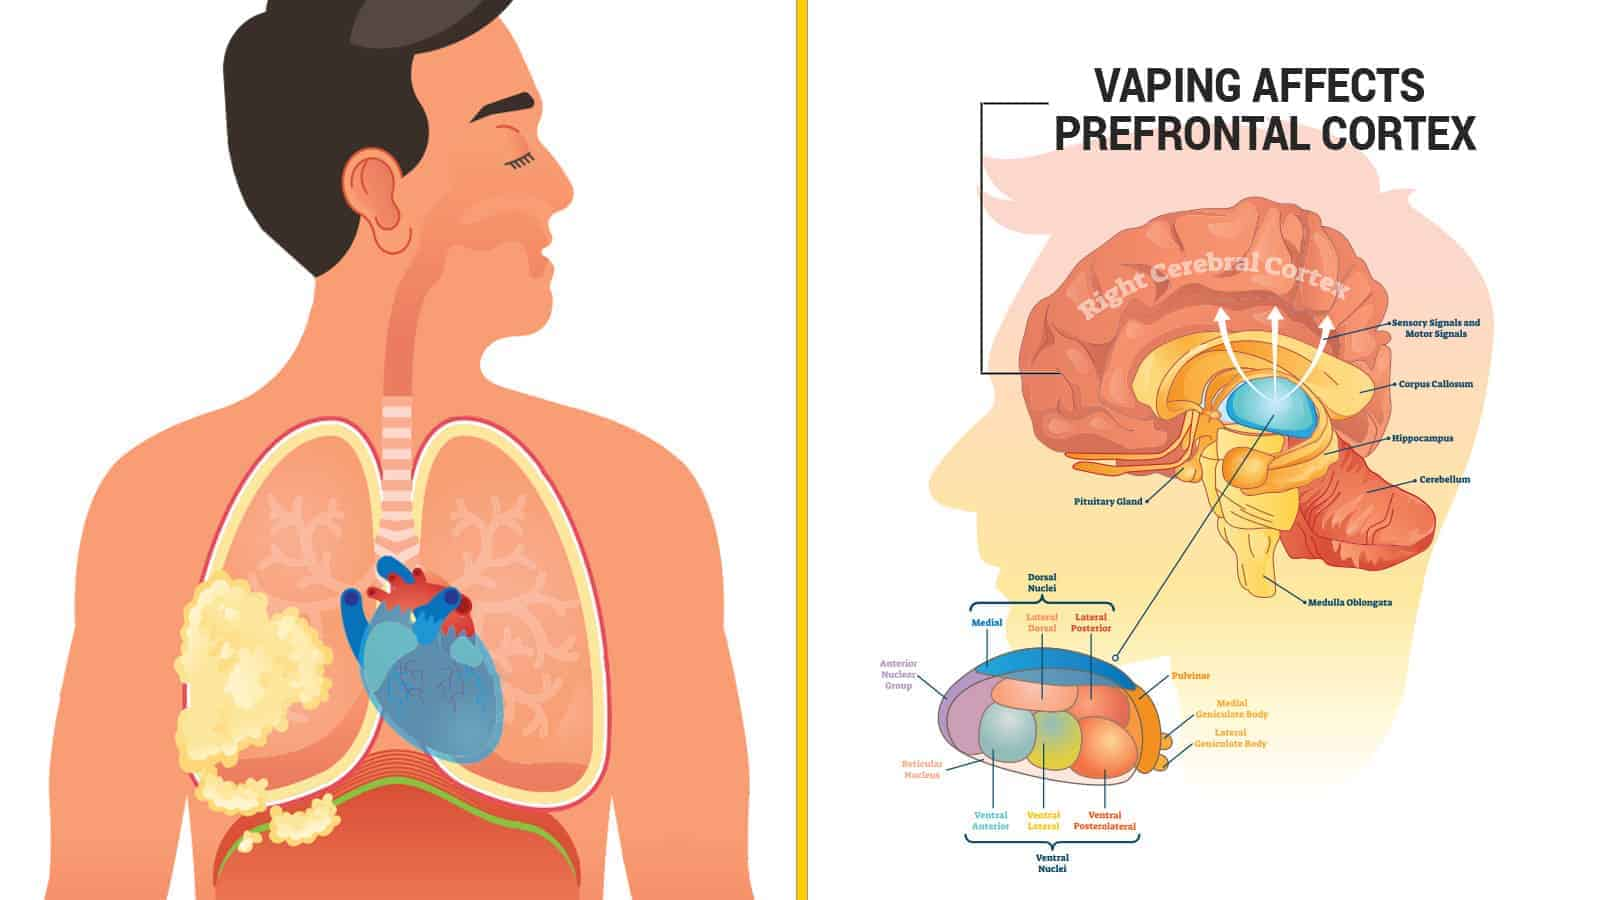 Researchers Reveal How Vaping Causes Brain and Lung Damage »